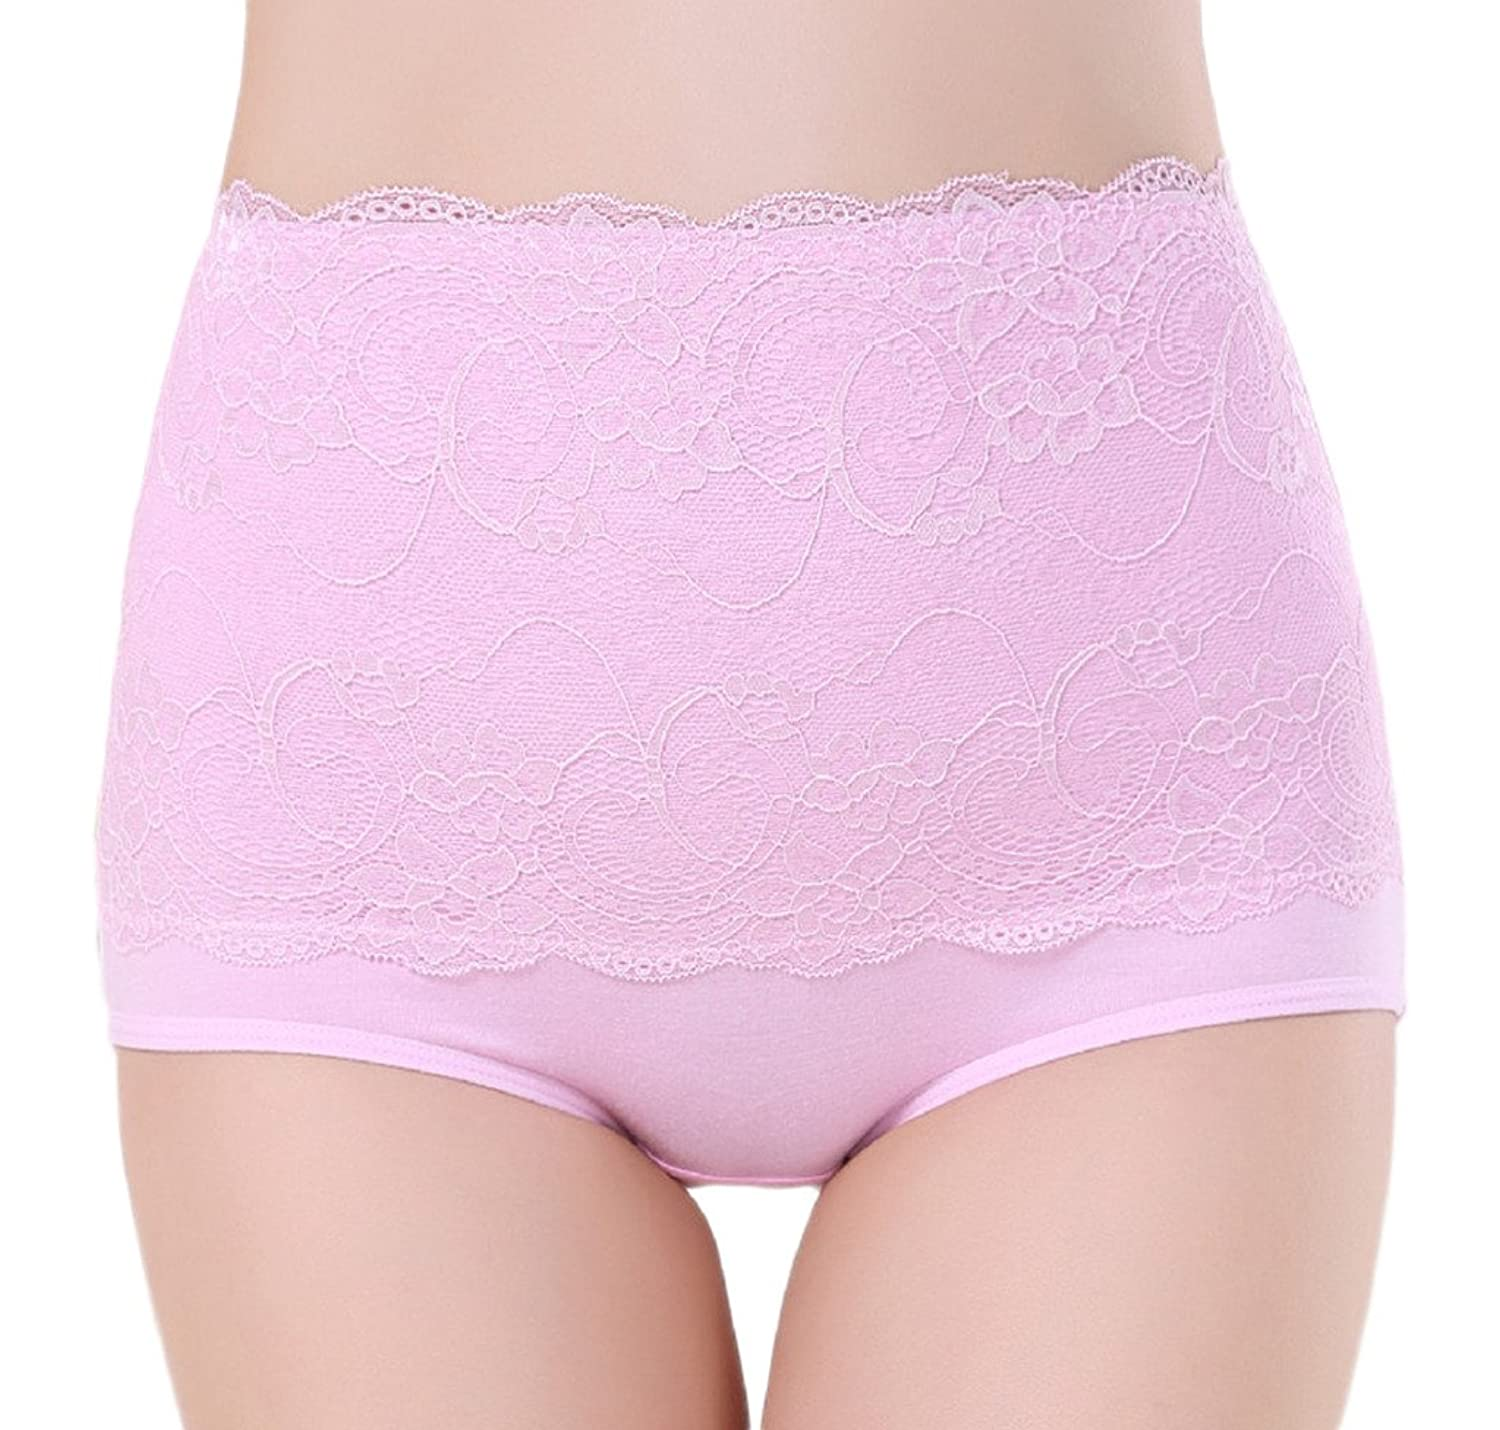 Smile YKK Women High-Waist Jacquard Seamless Cotton Underwear Briefs Knickers